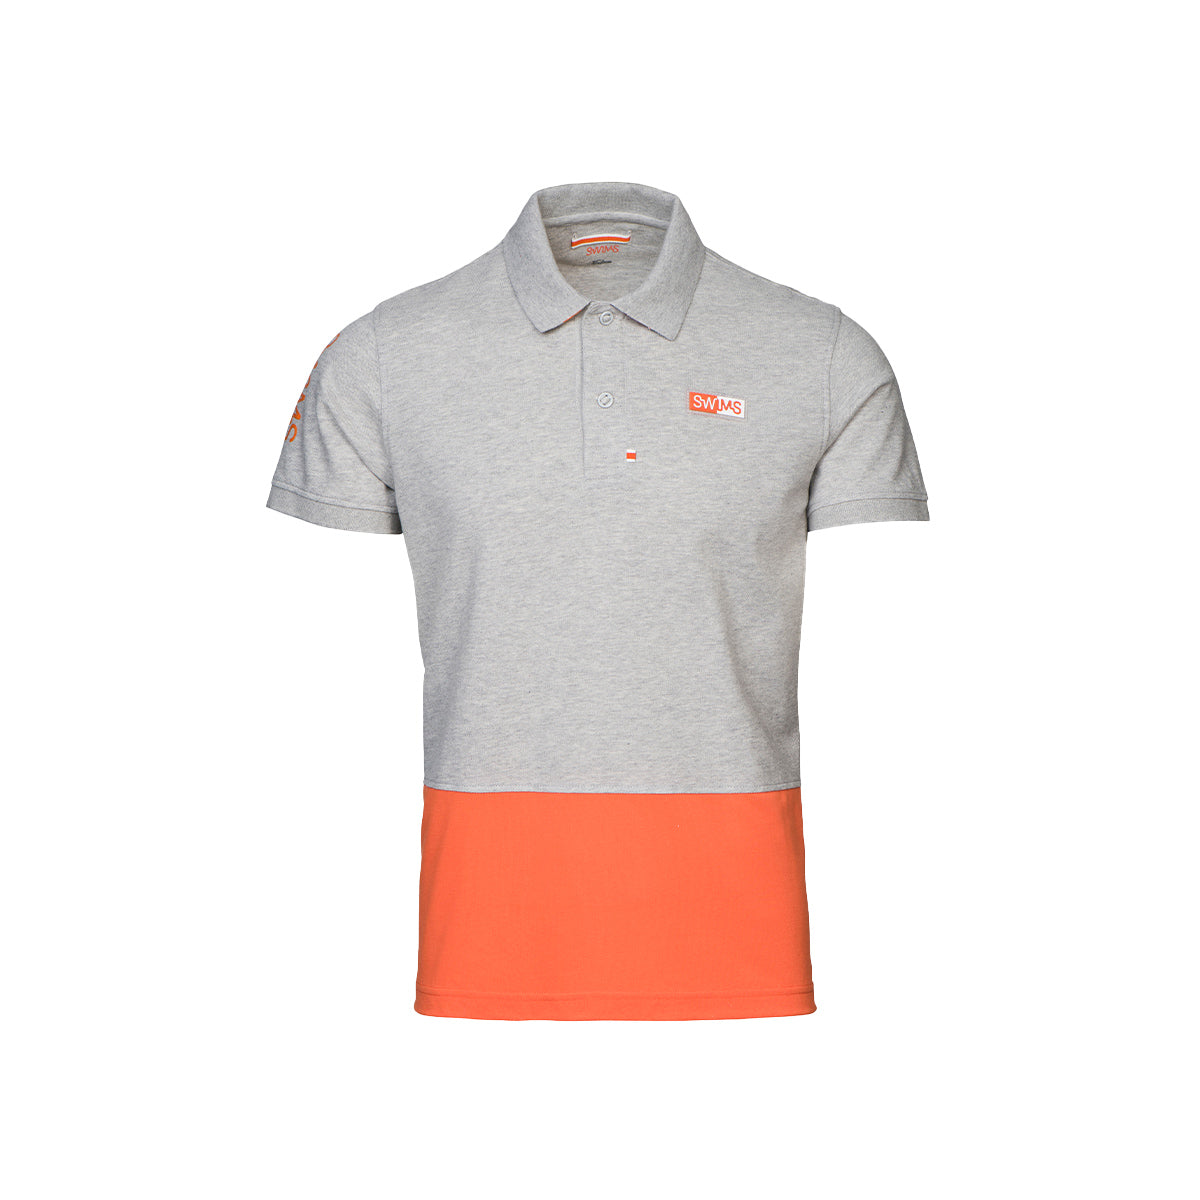 Forno Logo Hybrid Hydrophobic Pique Polo - background::white,variant::light grey